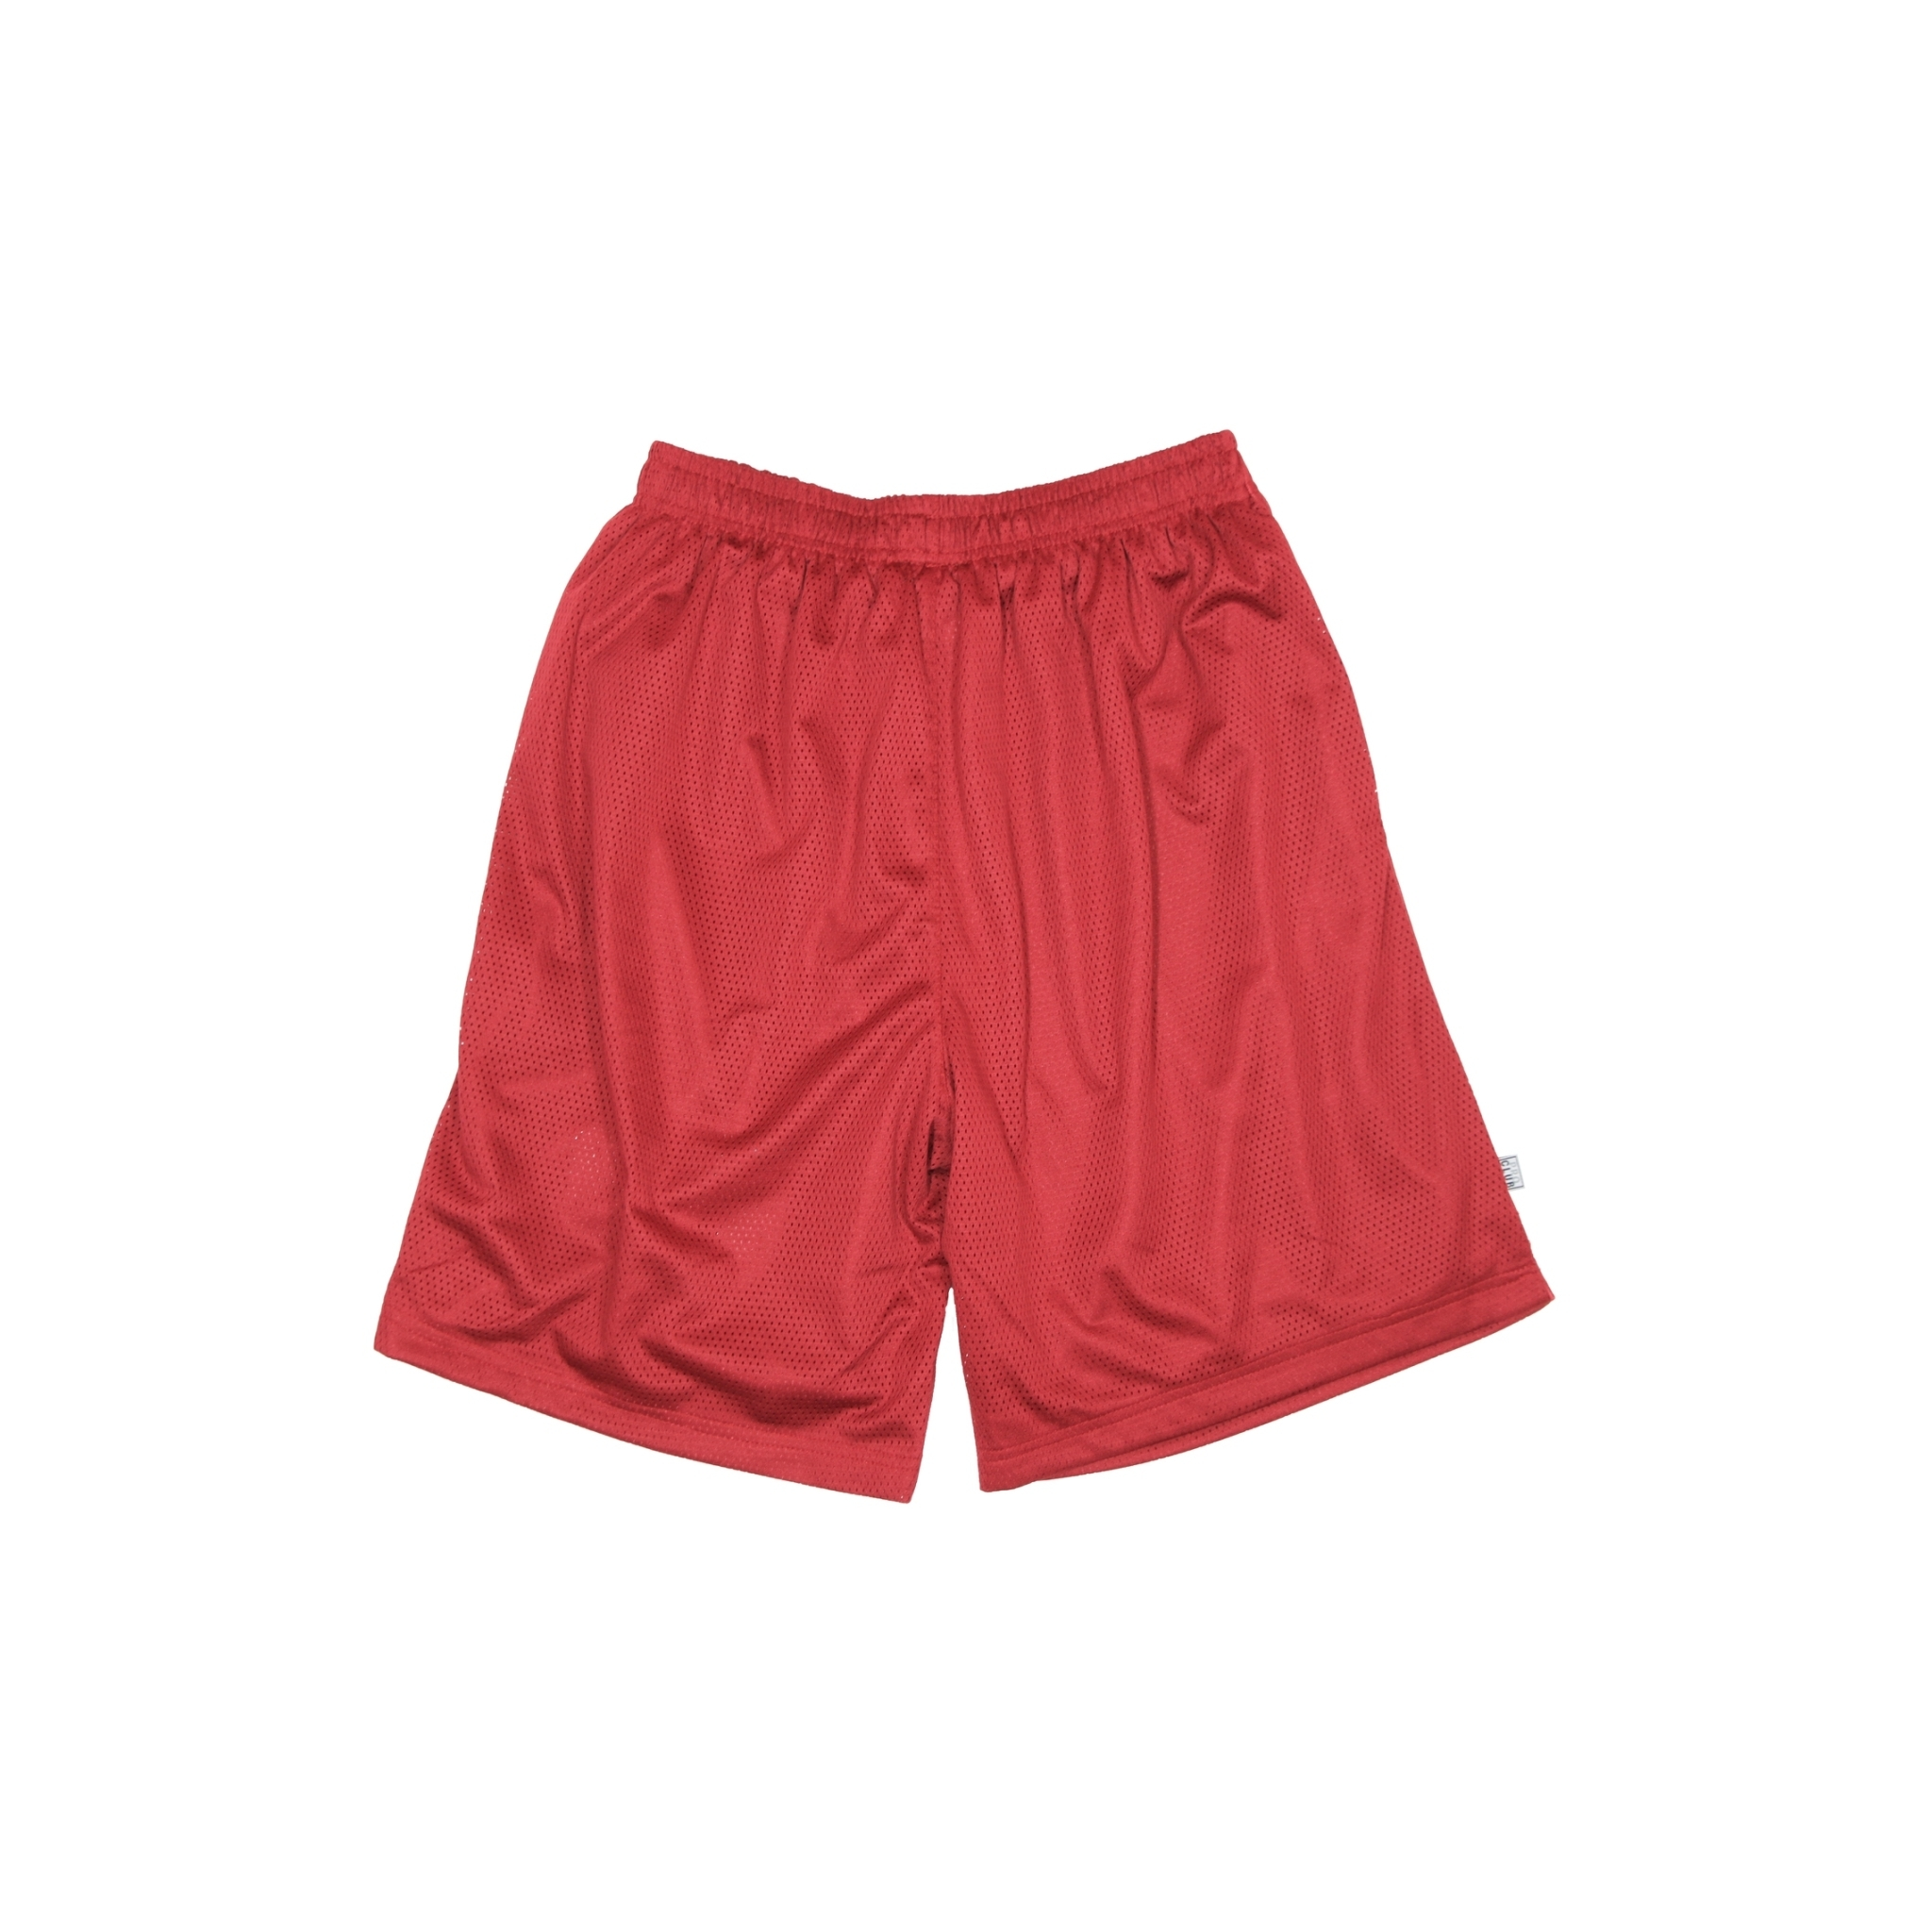 LOGO PRO CLUB MESH SHORTS [BURGUNDY]